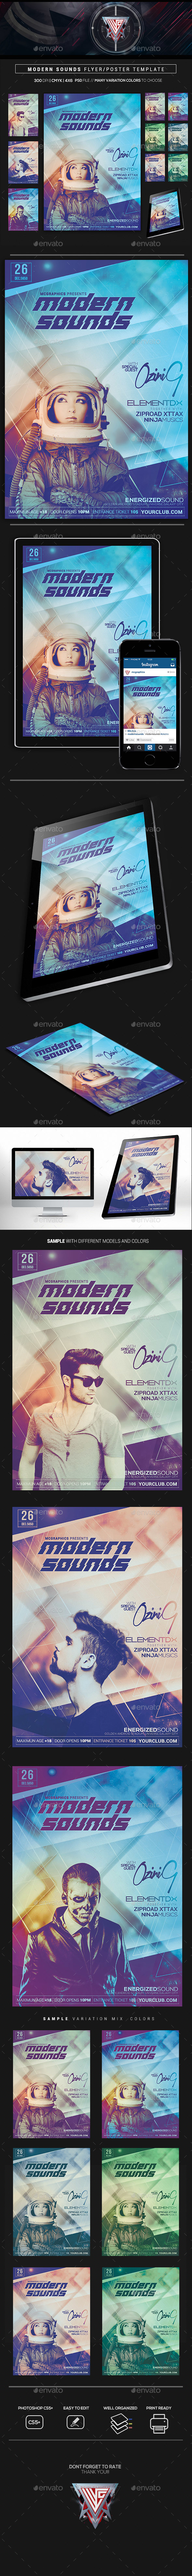 Modern Sounds Flyer/Poster Template - Clubs & Parties Events